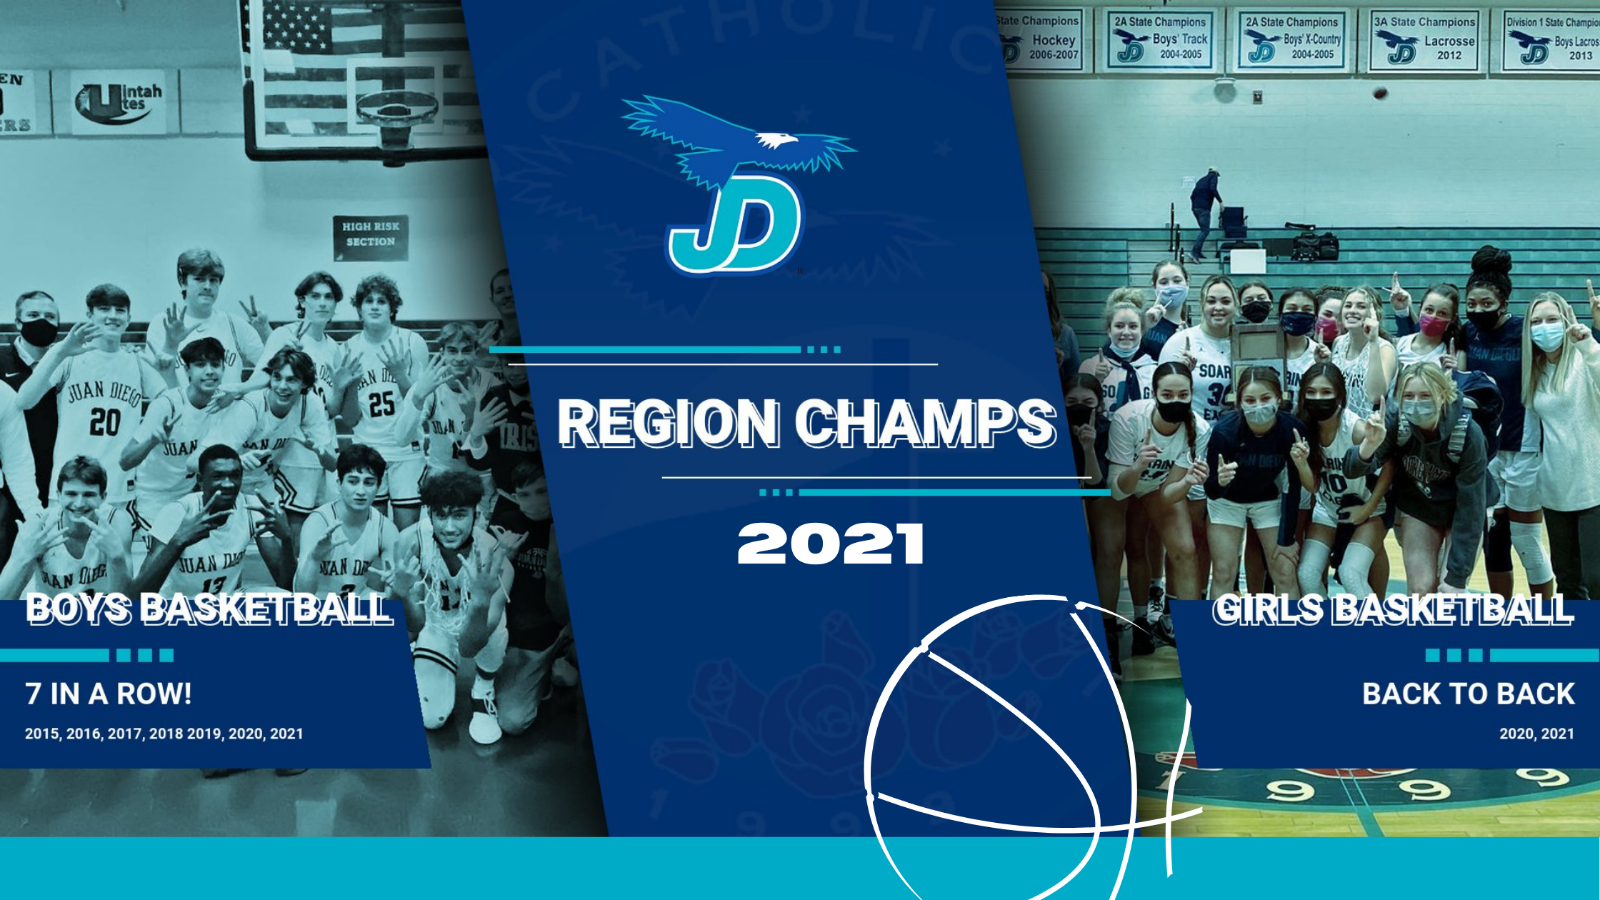 JD Claims Region Titles in both Girls and Boys Basketball